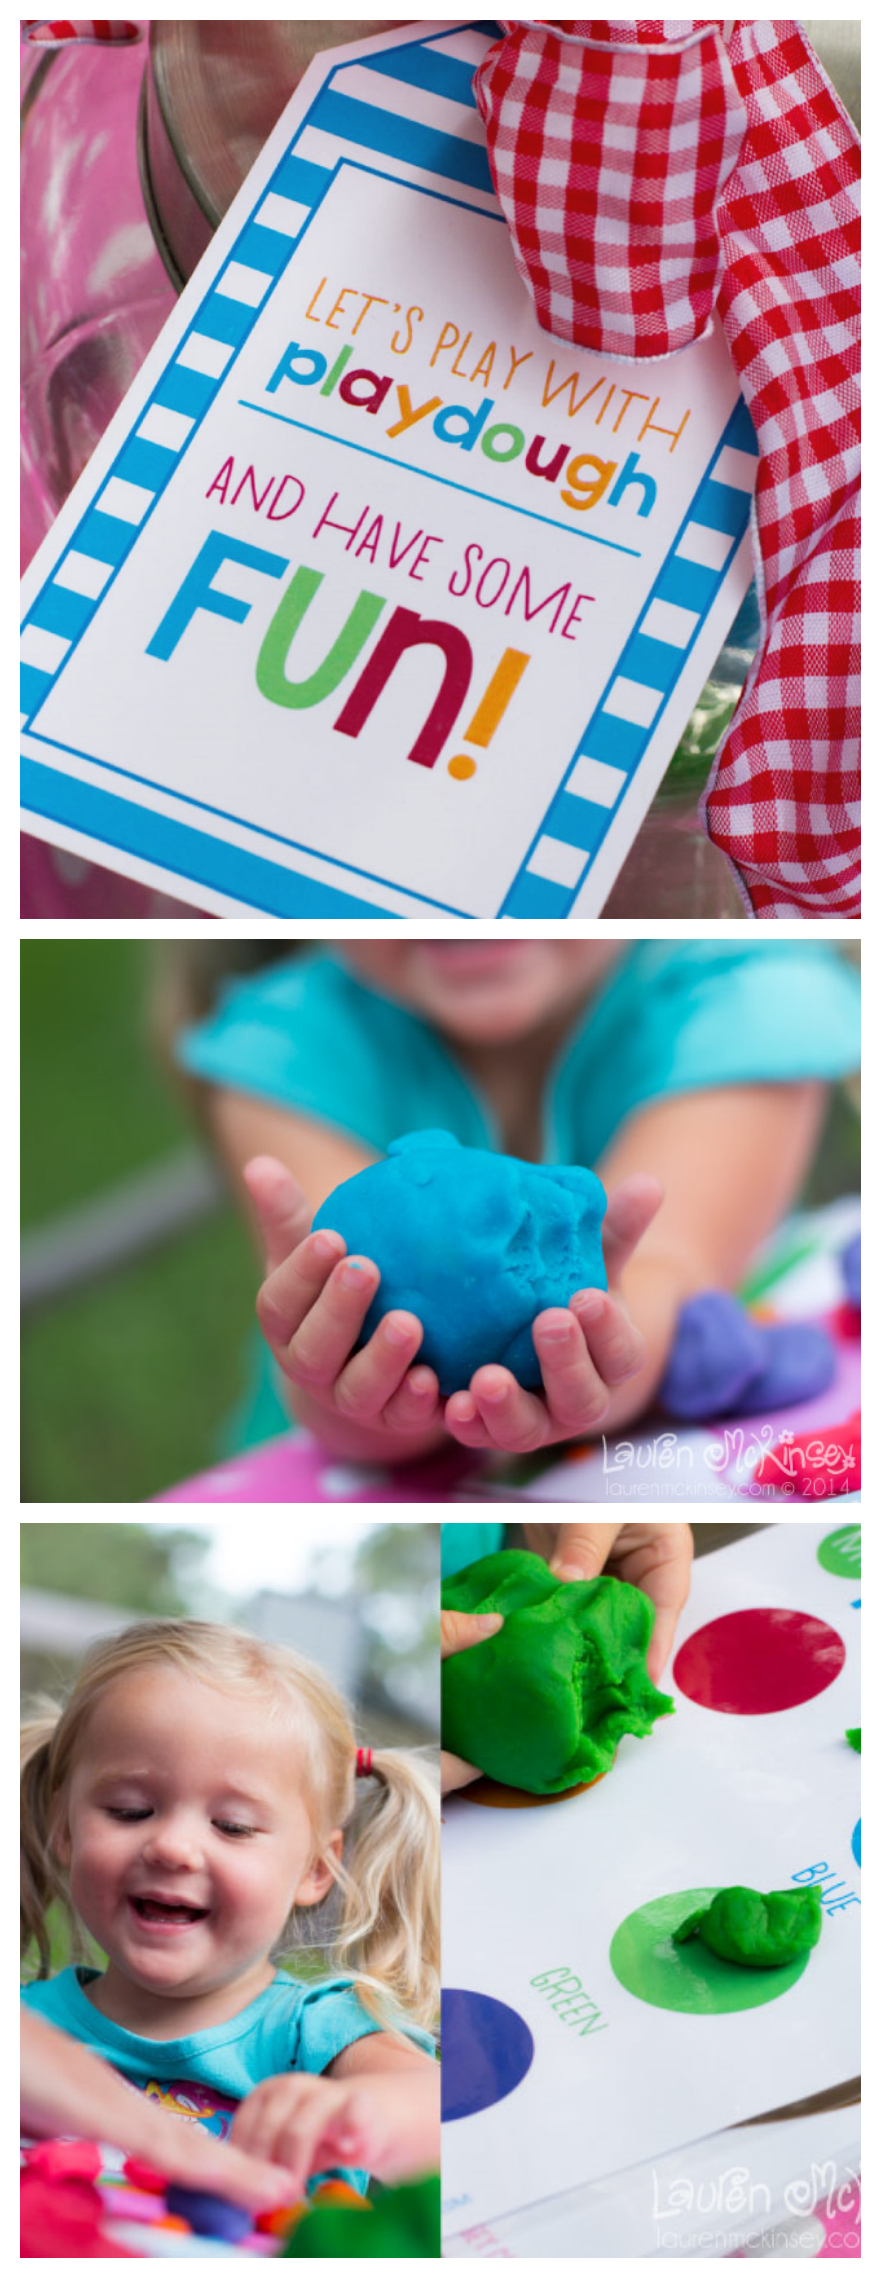 Homemade Playdough Recipe + Free printable Gift Tags, playdough mat and recipe.